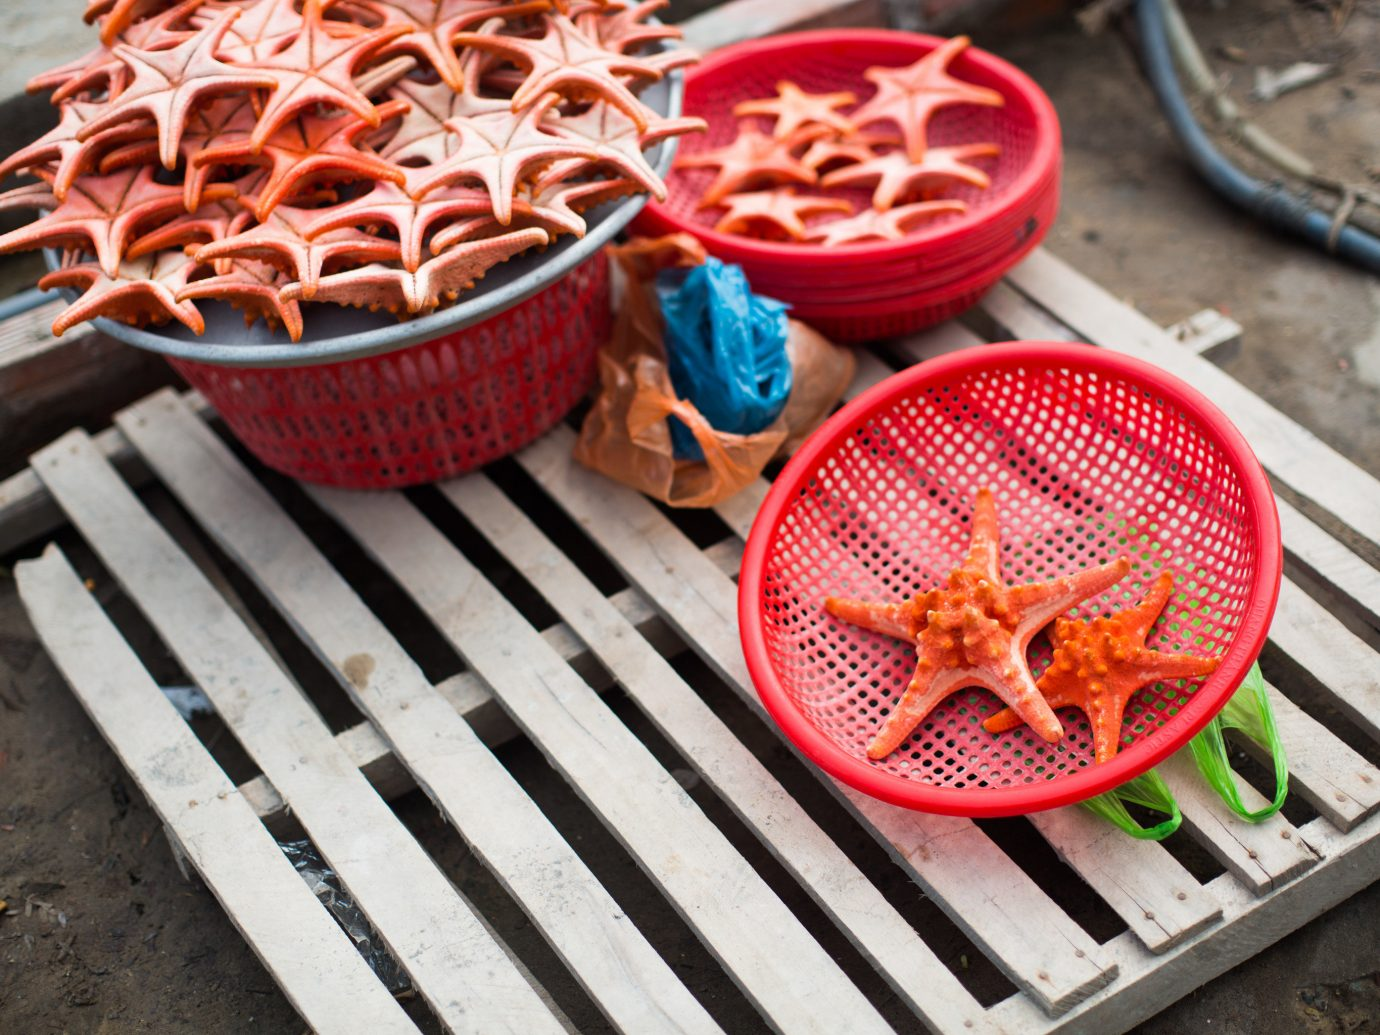 ground red food dish wooden wheel meat baking snack food produce meal dessert flavor vegetable